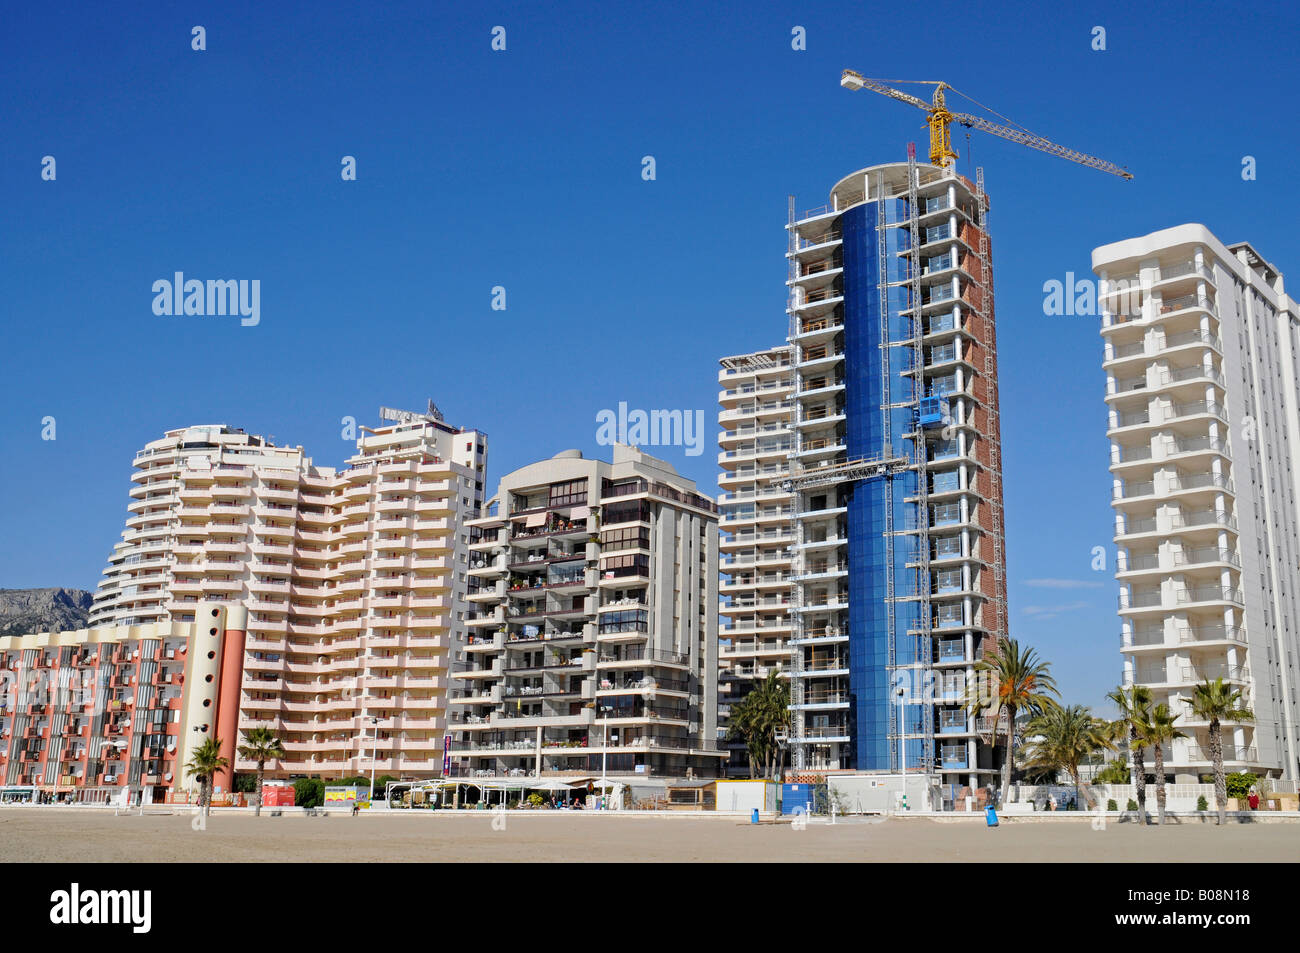 Multistory buildings, high-rises on the beach, Arenal, Calpe, Alicante, Costa Blanca, Spain - Stock Image